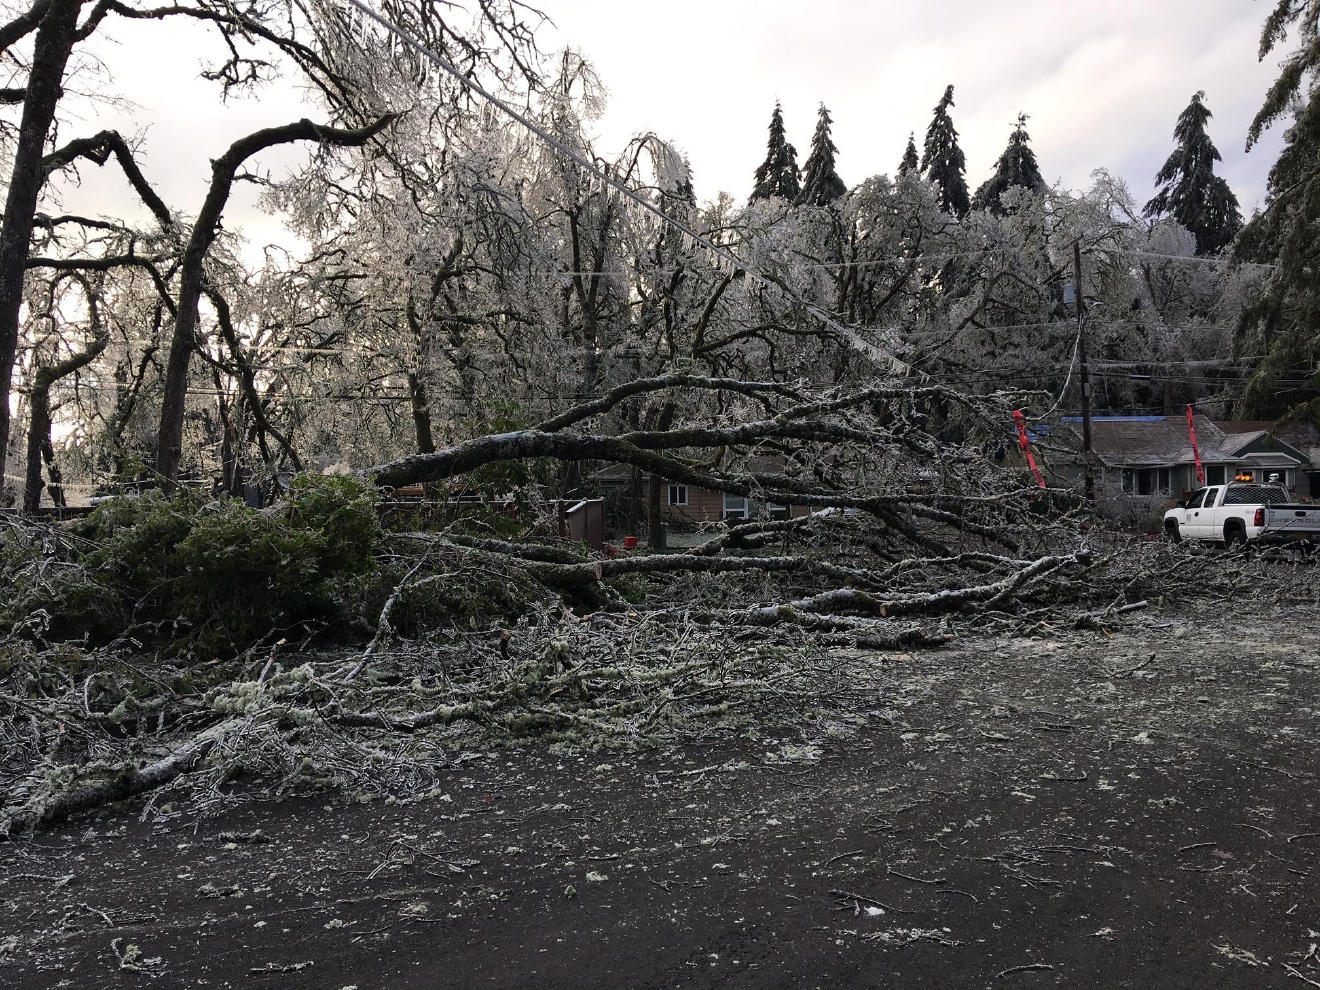 EWEB is still working to restore power to Eugene residents three days after an ice storm glazed the city and caused trees to break and fall onto power lines. Photo courtesy EWEB